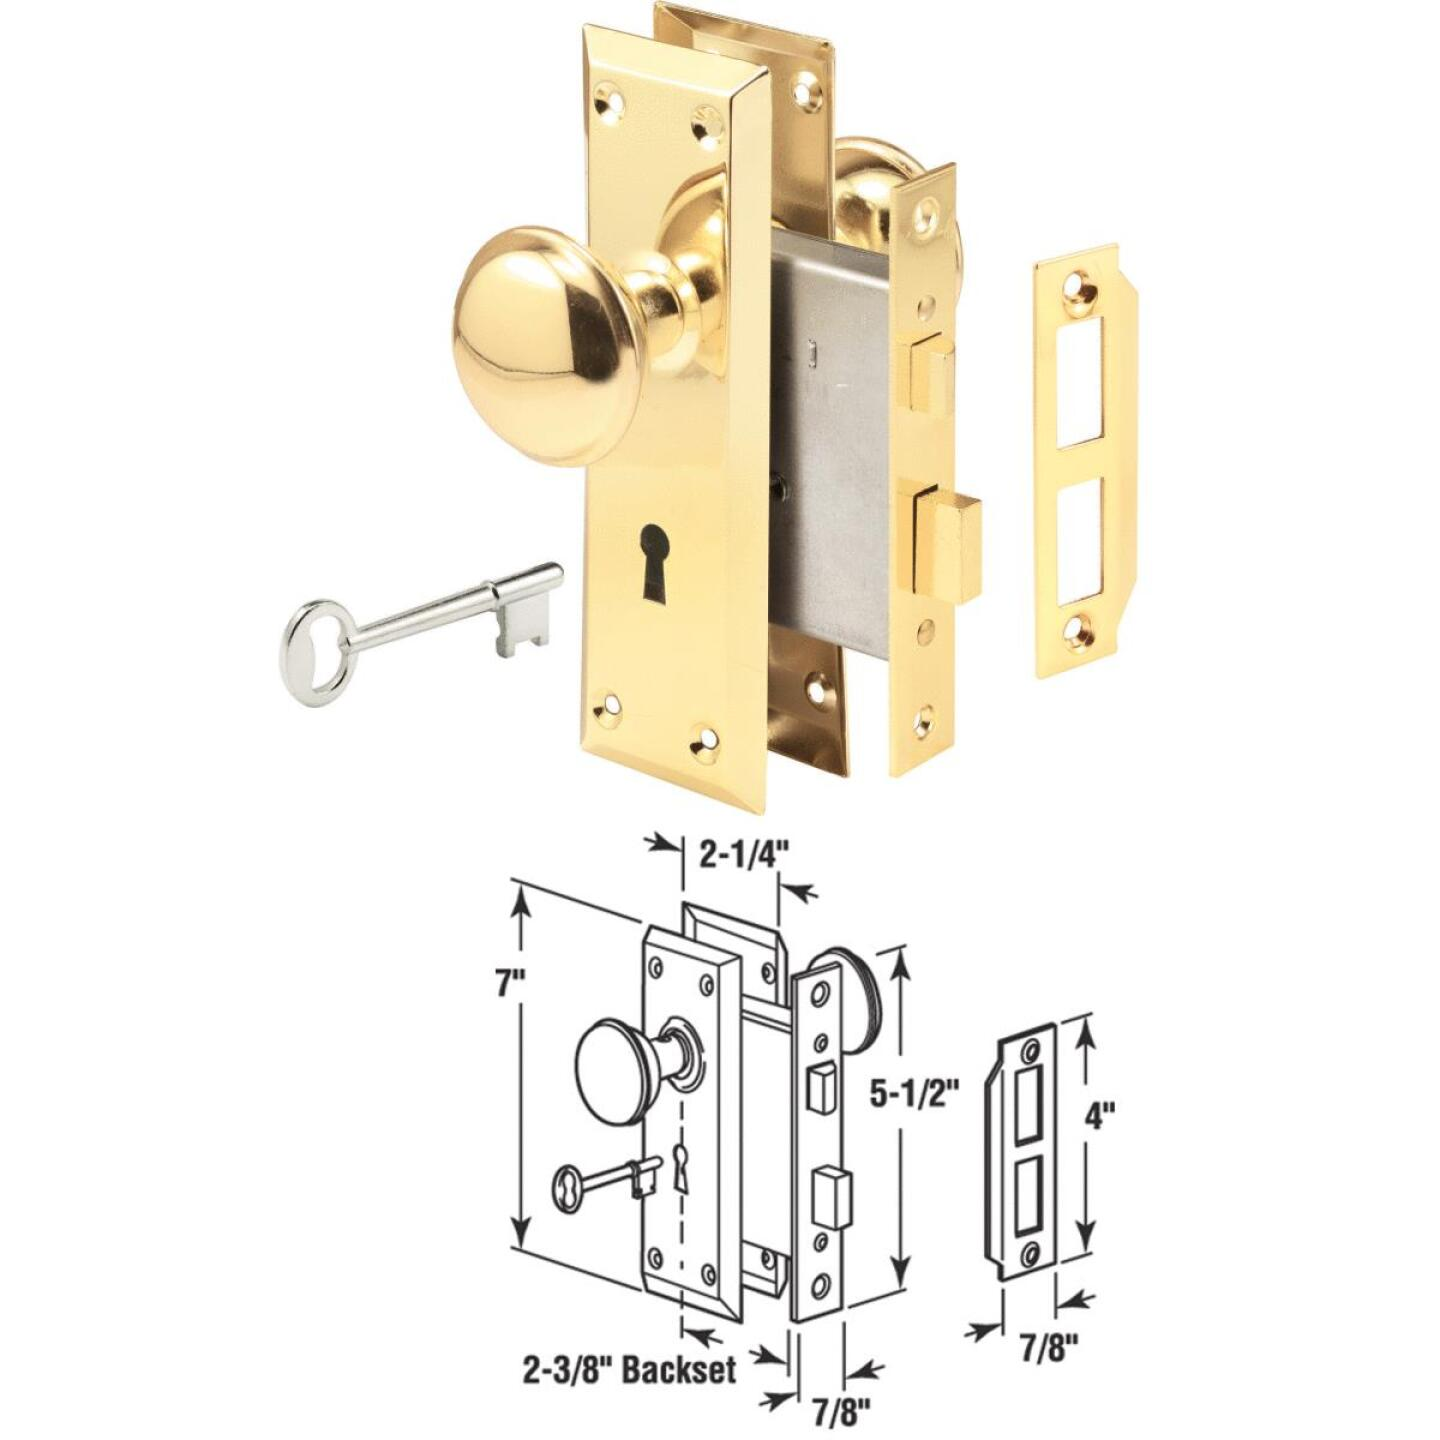 Prime Line Bit Key Mortise Lockset with Knob Image 1